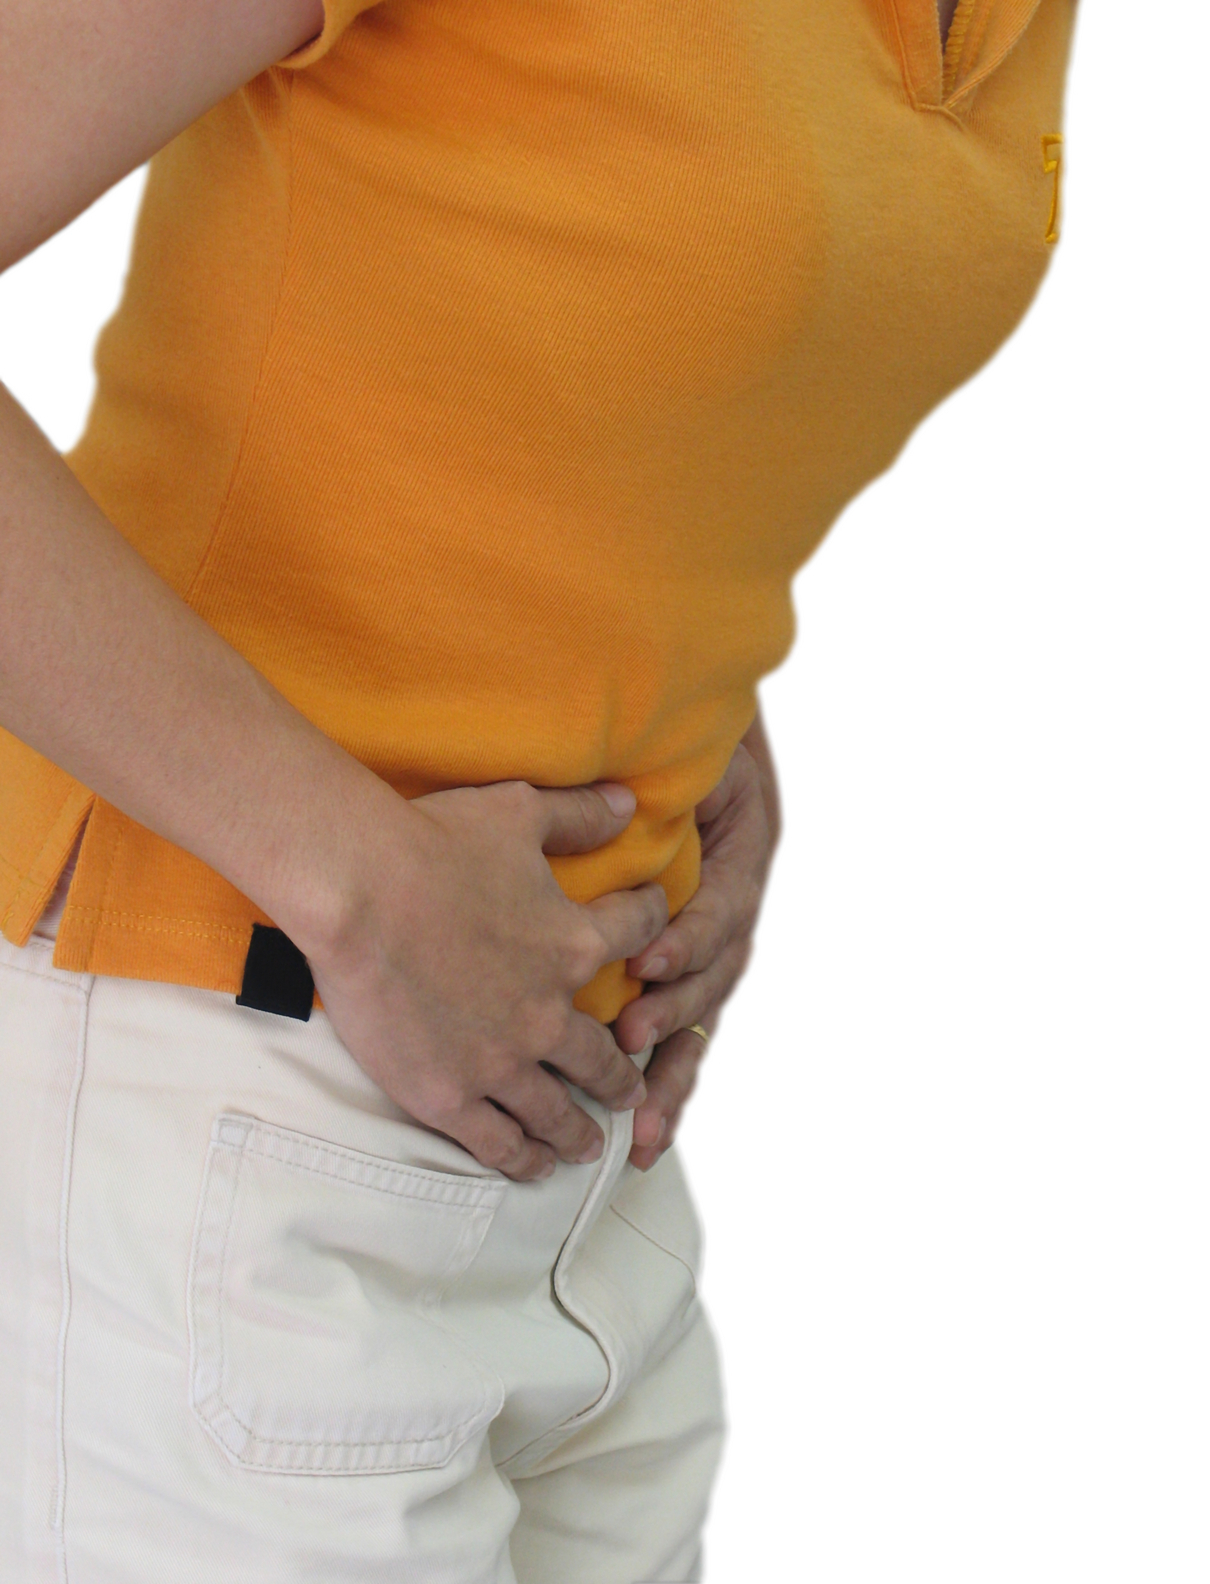 parasitic gastrointestinal infection signs amp symptoms